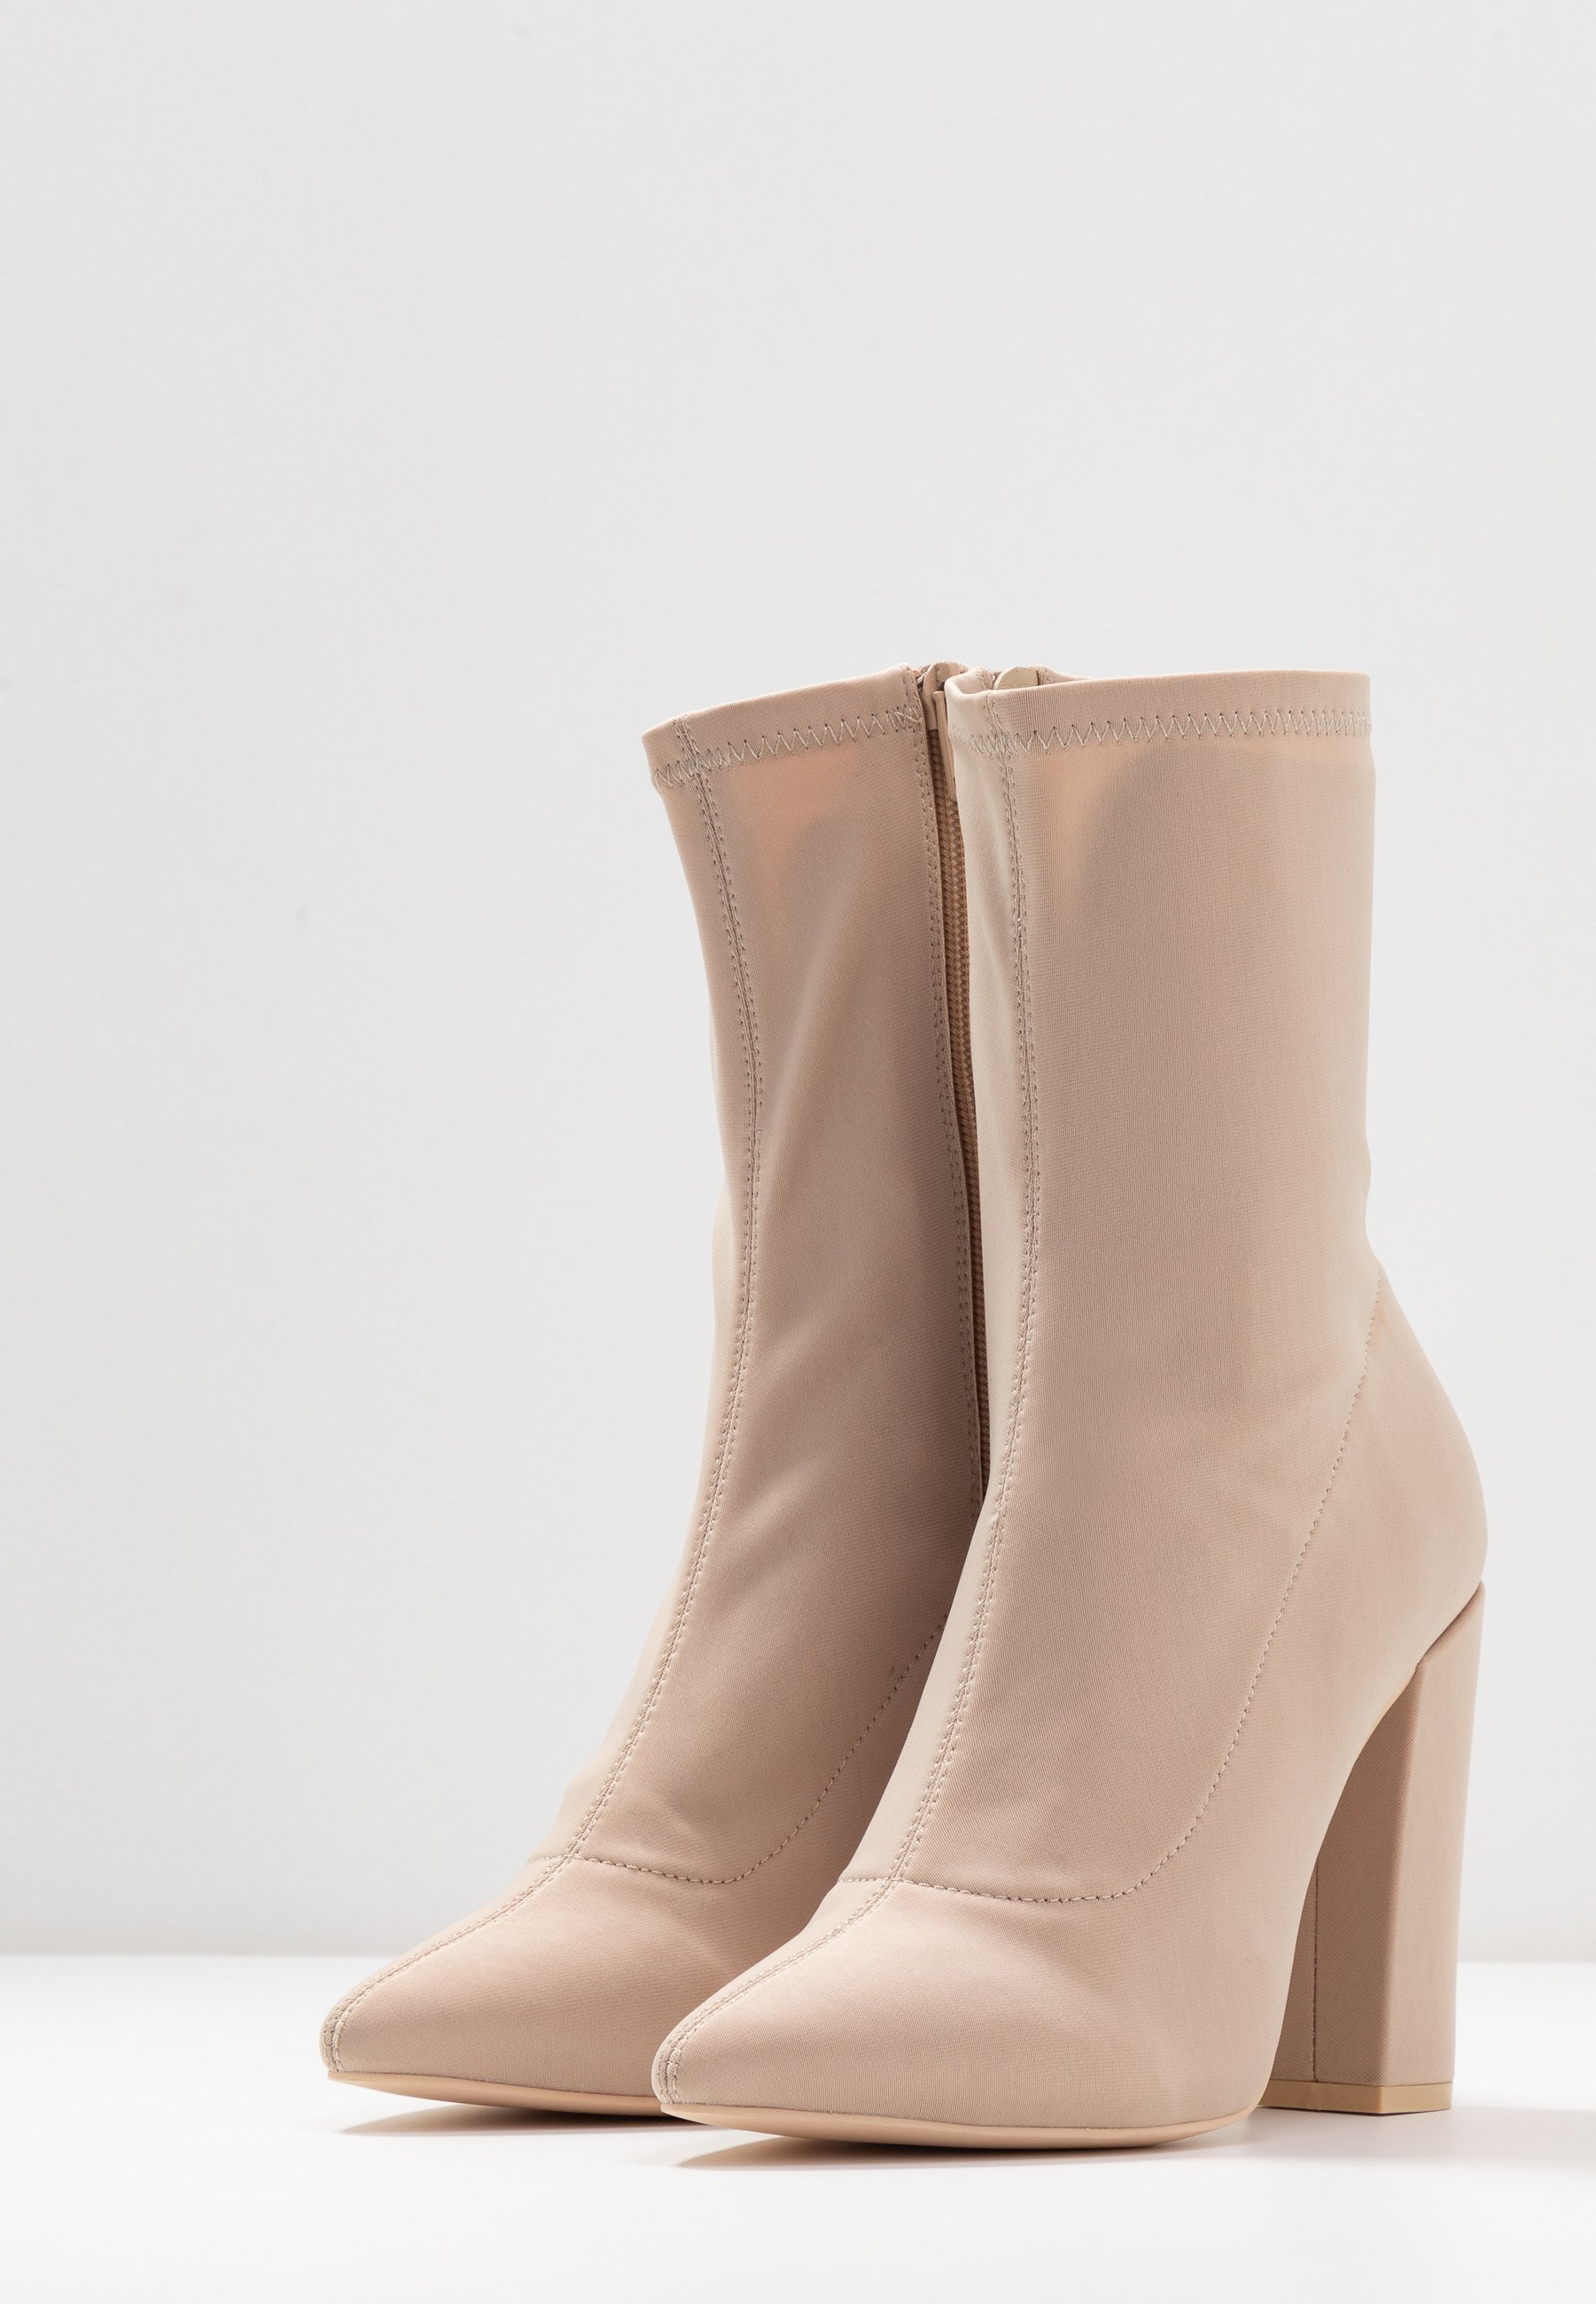 Nly By Nelly Pointy Stretchy Boot - Ankelboots Med Høye Hæler Light Beige